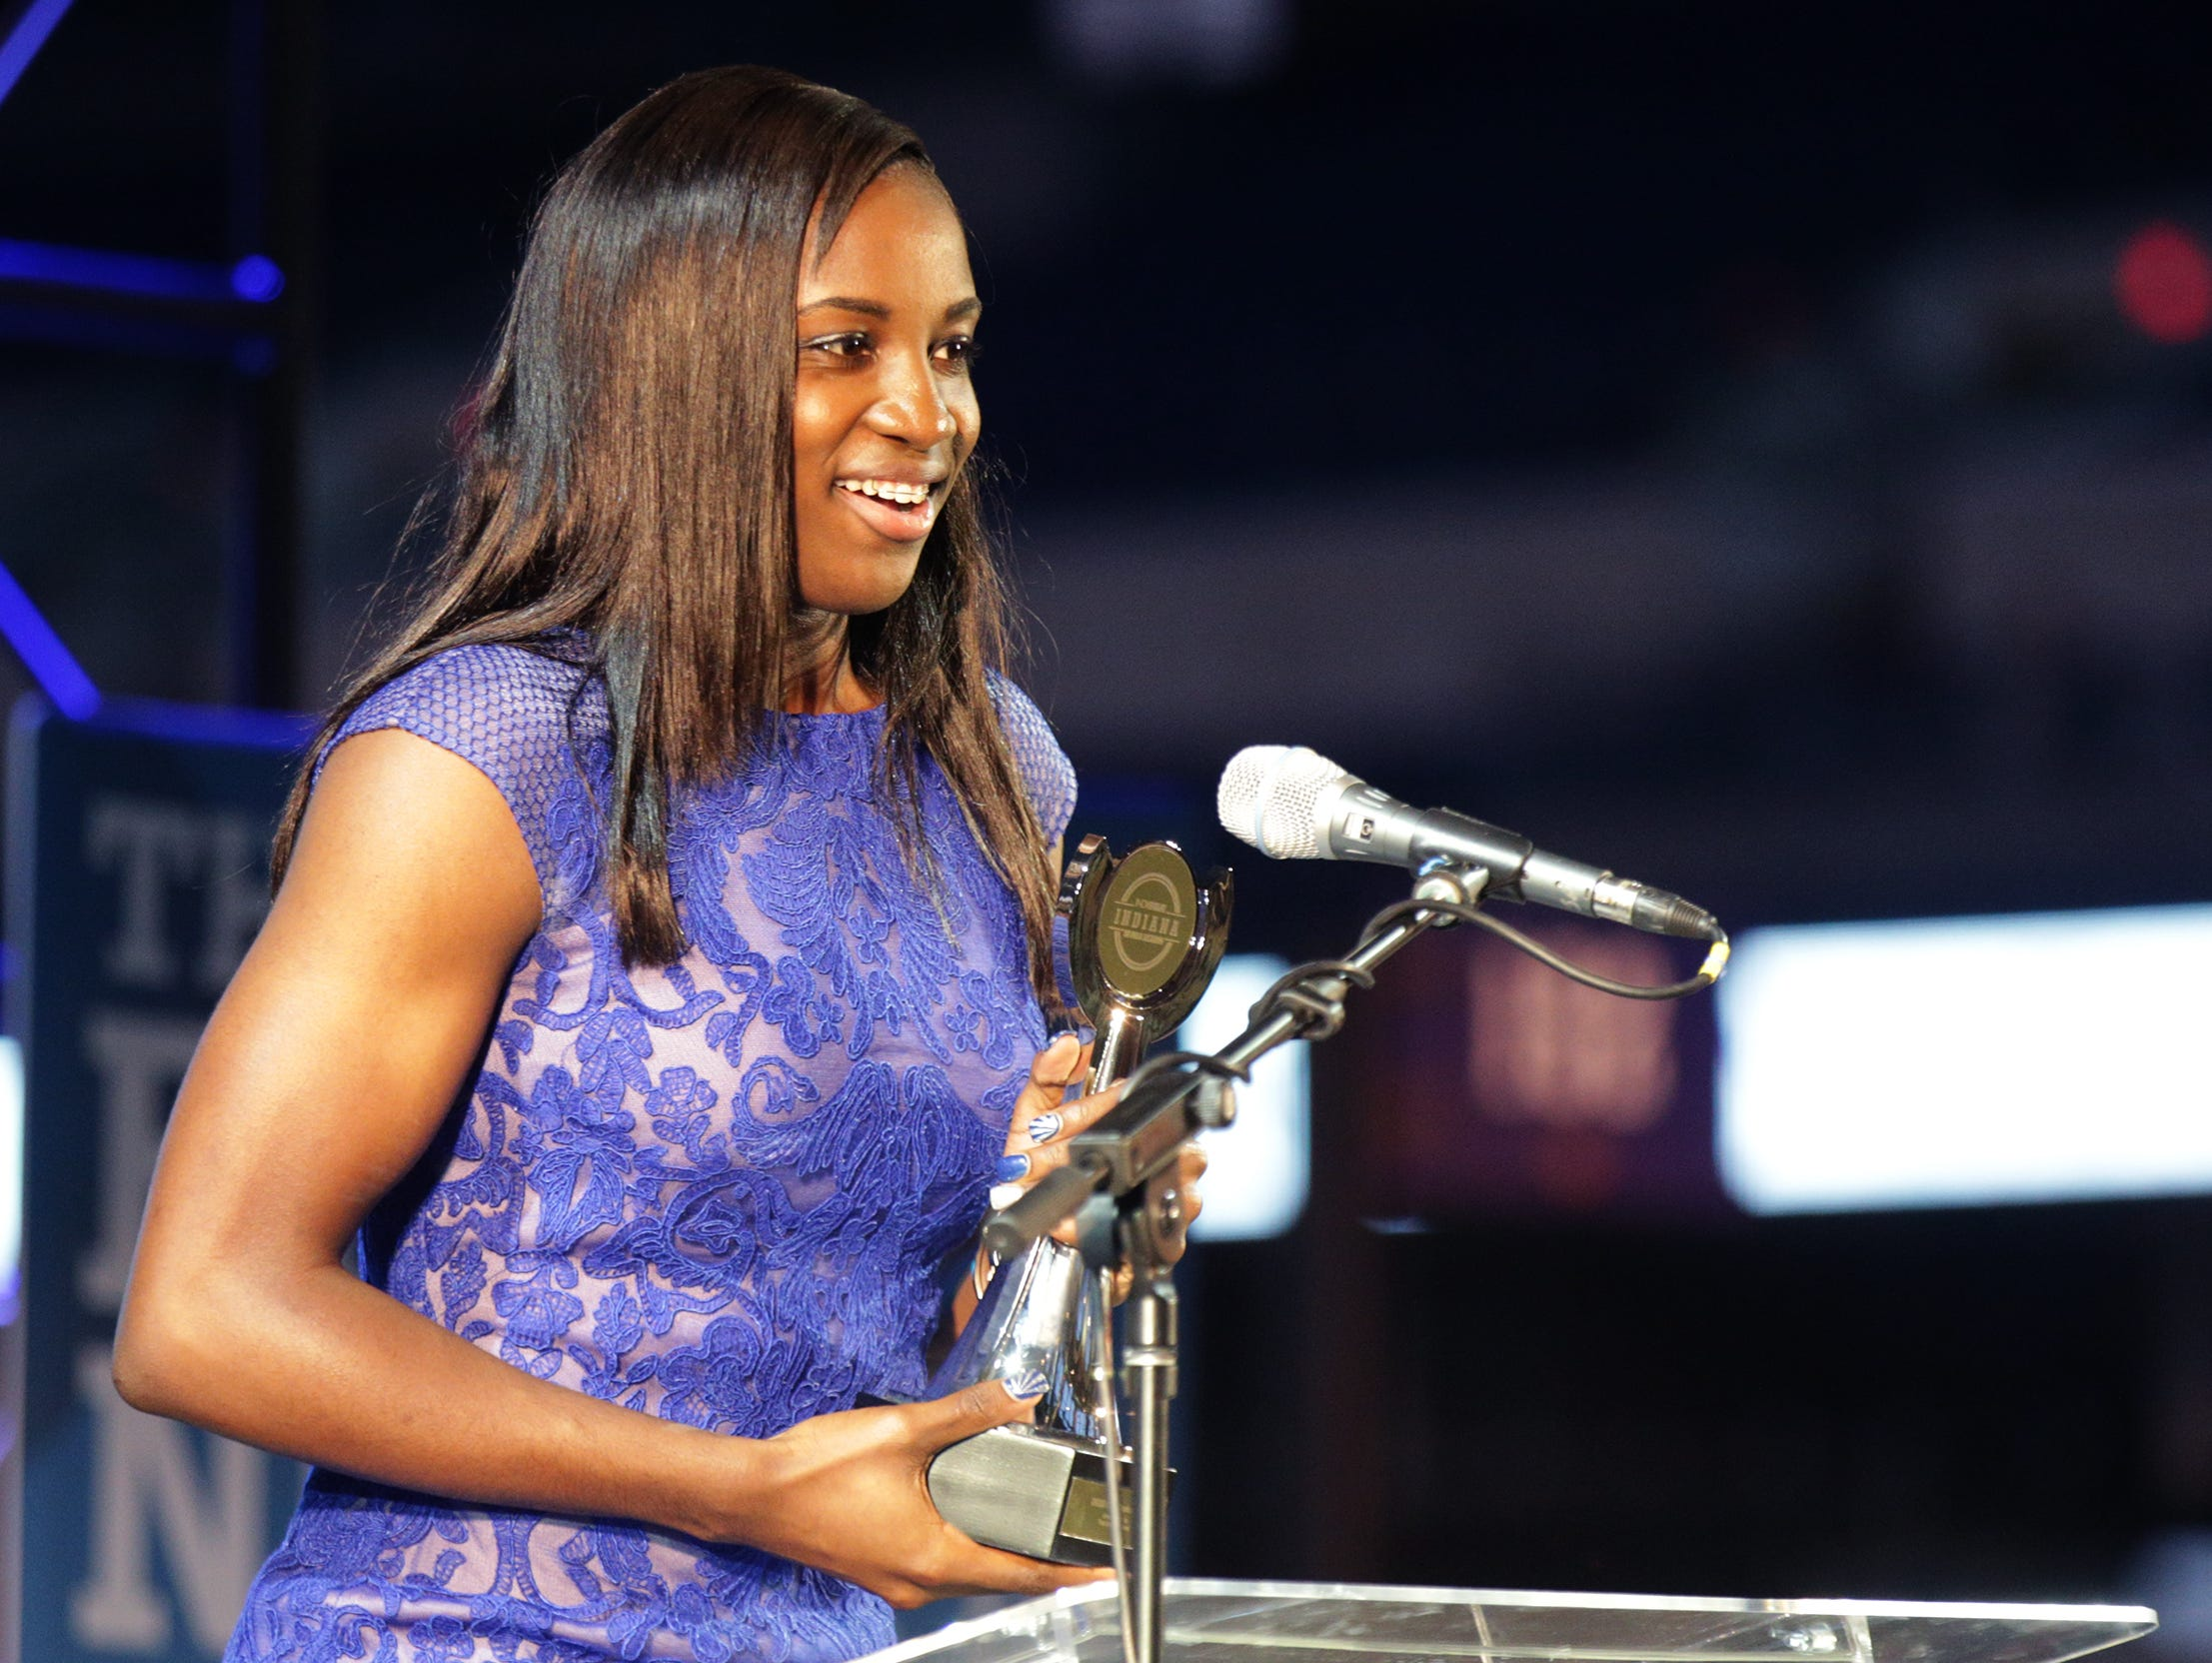 Jackie Young, of Princeton High School, was named IndyStar Miss Basketball and the IndyStar Female Athlete of the Year. IndyStar held the Indiana Sports Awards, Thursday, April 28, 2016 at Lucas Oil Stadium where they honored the outstanding accomplishments of 200+ high school athletes in 28 sports. The featured guest speaker was Indianapolis Colts' quarterback Andrew Luck. The evening's host was WNBA Indiana Fever Head Coach Stephanie White. Celebrity presenters included Indiana Fever All-Star Tamika Catchings, IndyCar driver Ed Carpenter and IndyStar's own sports columnist Gregg Doyel.